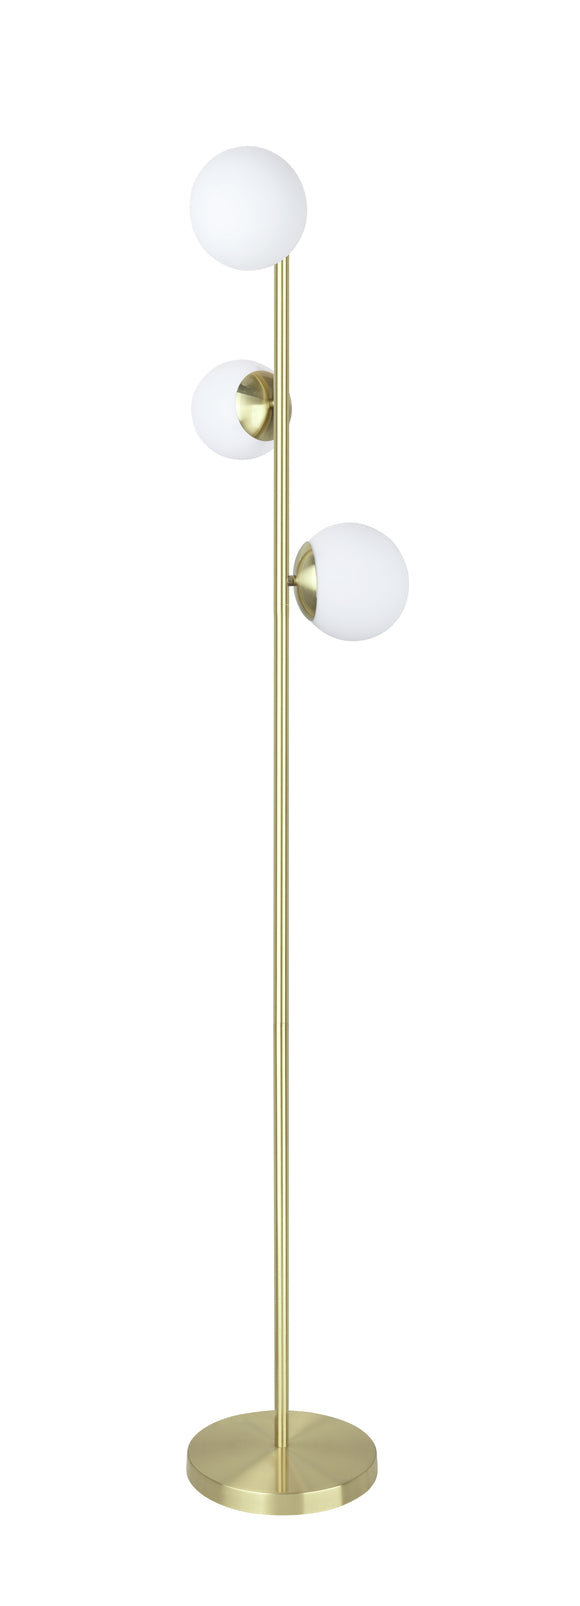 # 45021-11, Three-Light Floor Lamp, Transitional Design in Satin Brass, 65-1/2